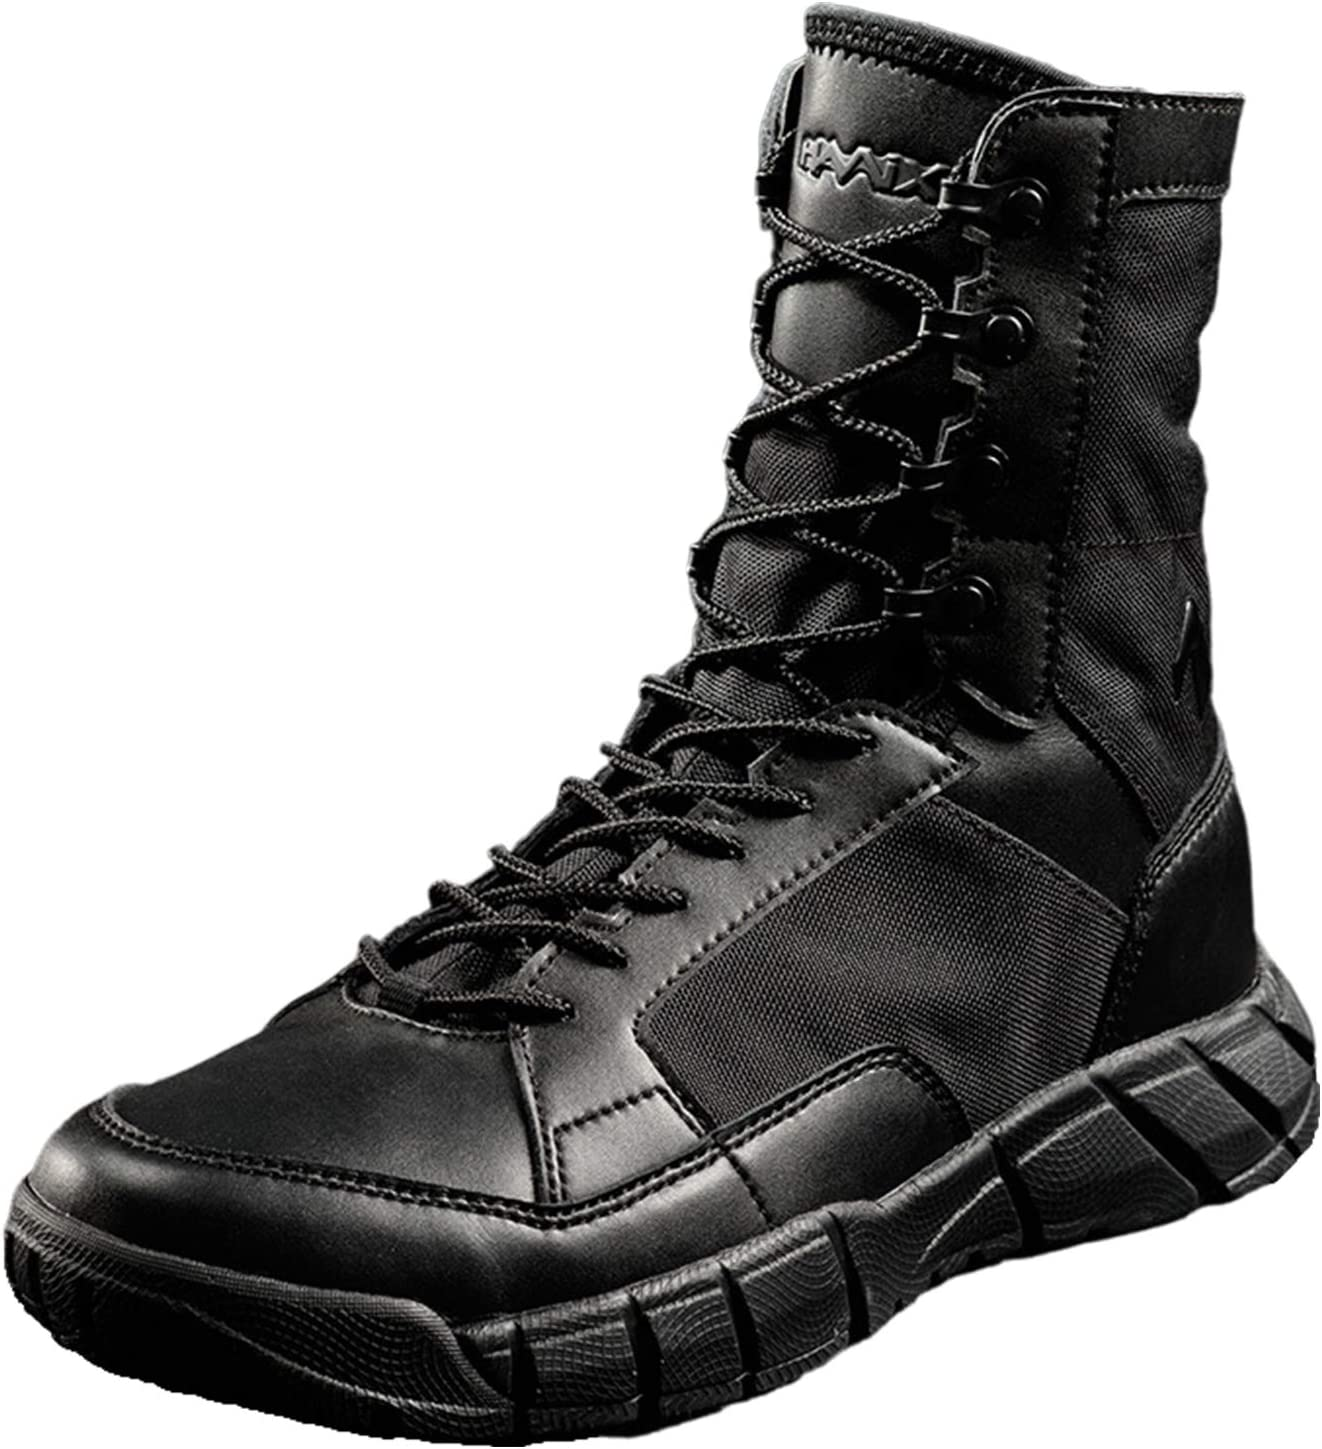 PAVEHAWK Men's 8 inch Large-scale sale Al sold out. Tactical Outdoor Casual Boots Lightweight